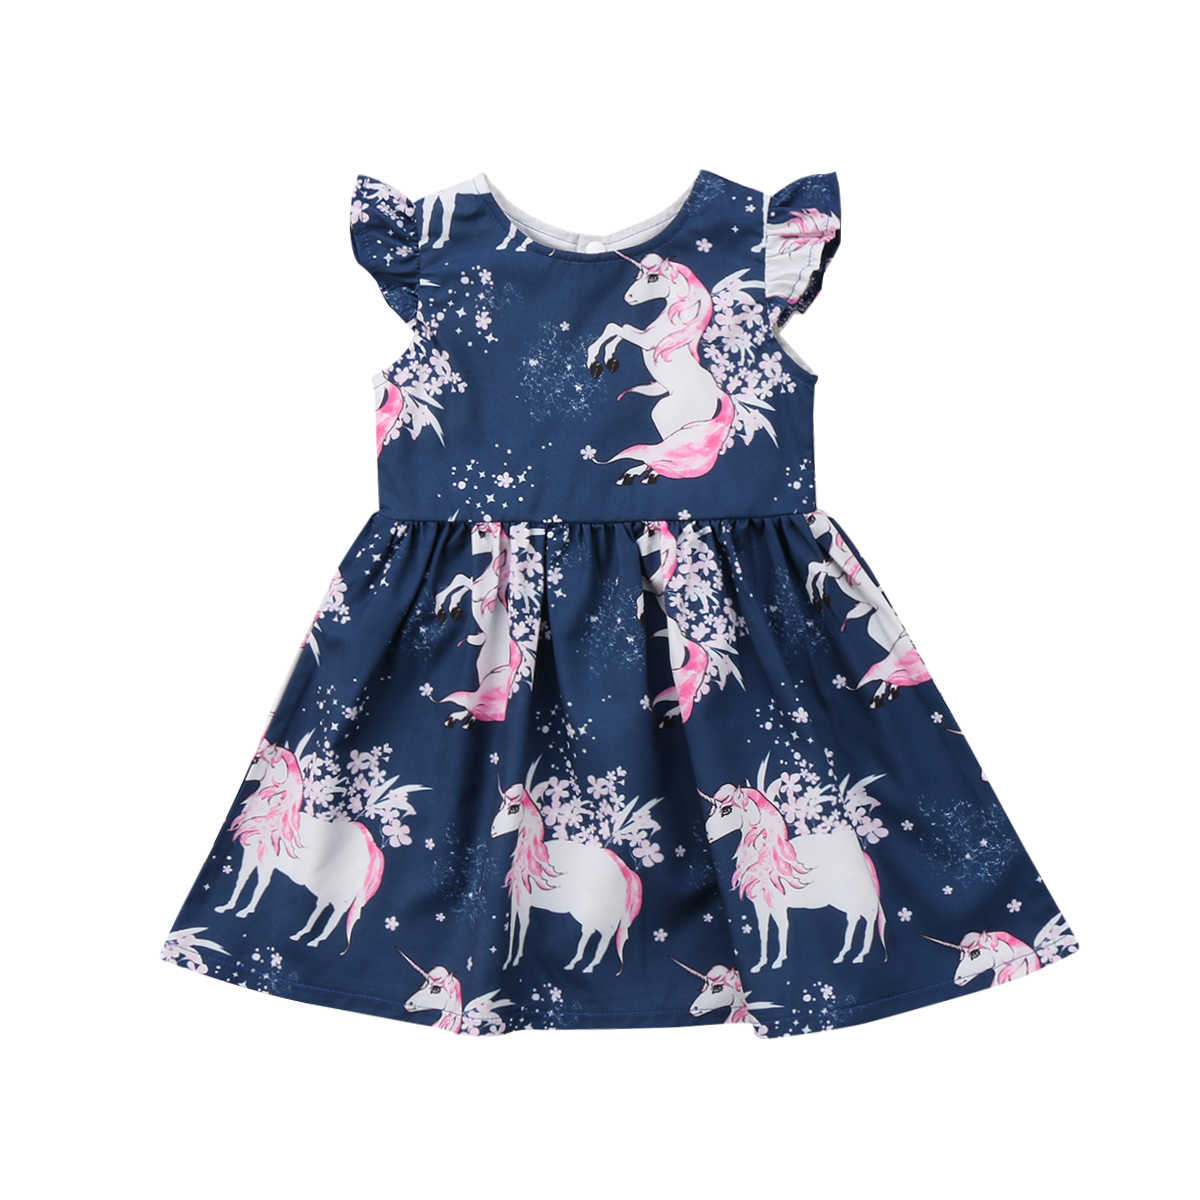 fcc73a4f56fc31 Toddler Baby Girls Dress Round Neck Floral Outfits Unicorn Summer Sleeveless  Blue Dresses Girl Clothing Cute